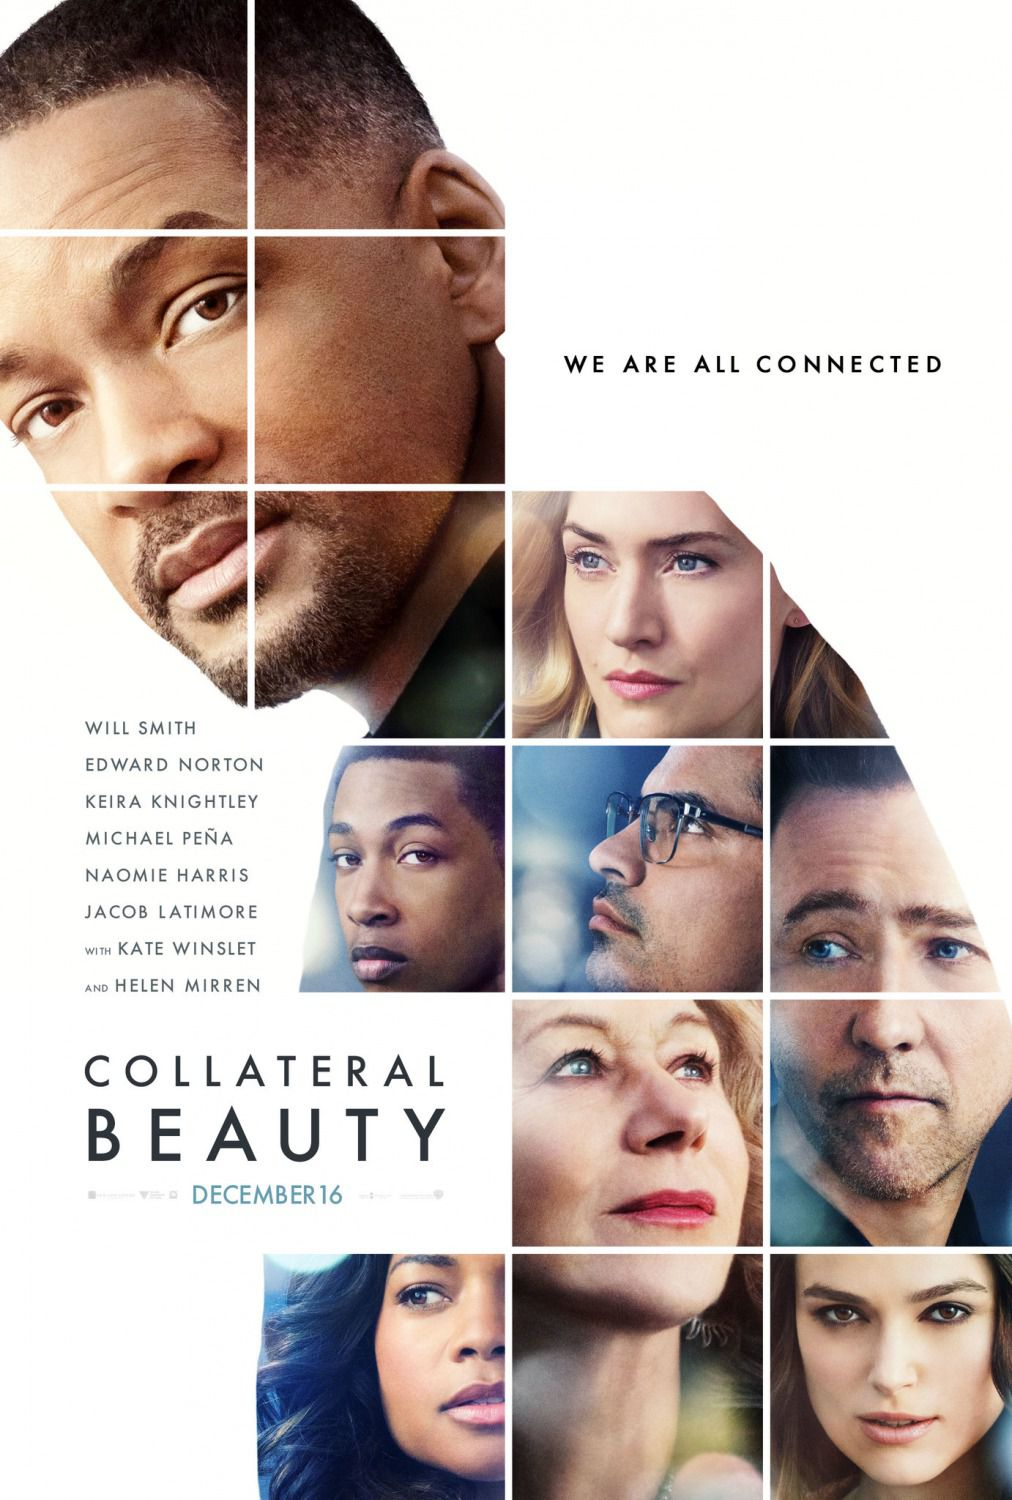 Collateral Beauty - la Bellezza Collaterale - Will Smith - Kate Winslet - Keira Knightley - Edward Norton - film drama poster